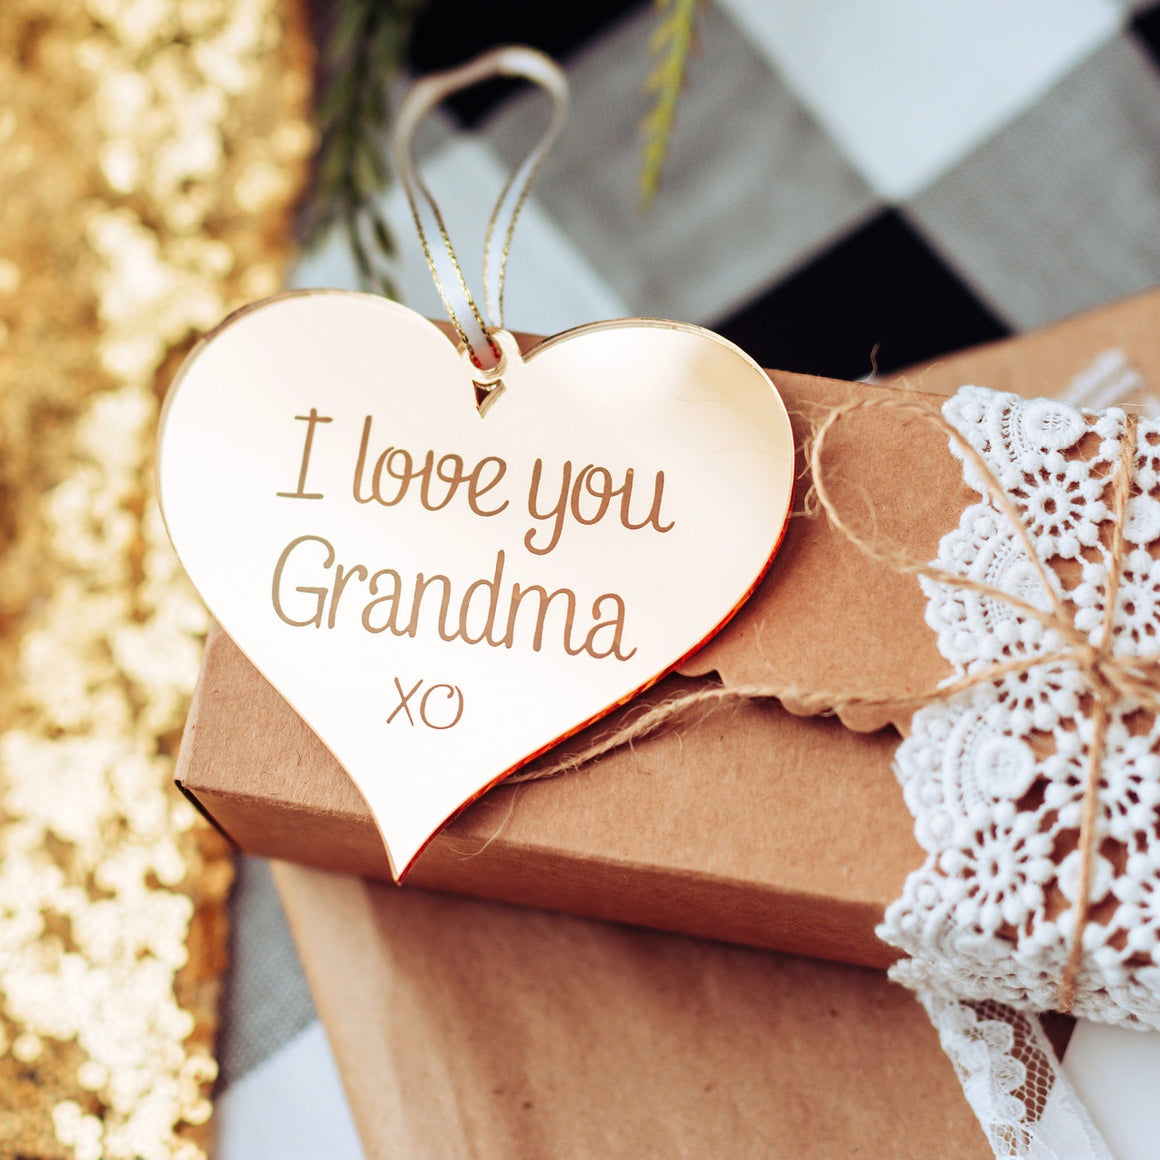 I Love you grandma ornament lying on a gift box